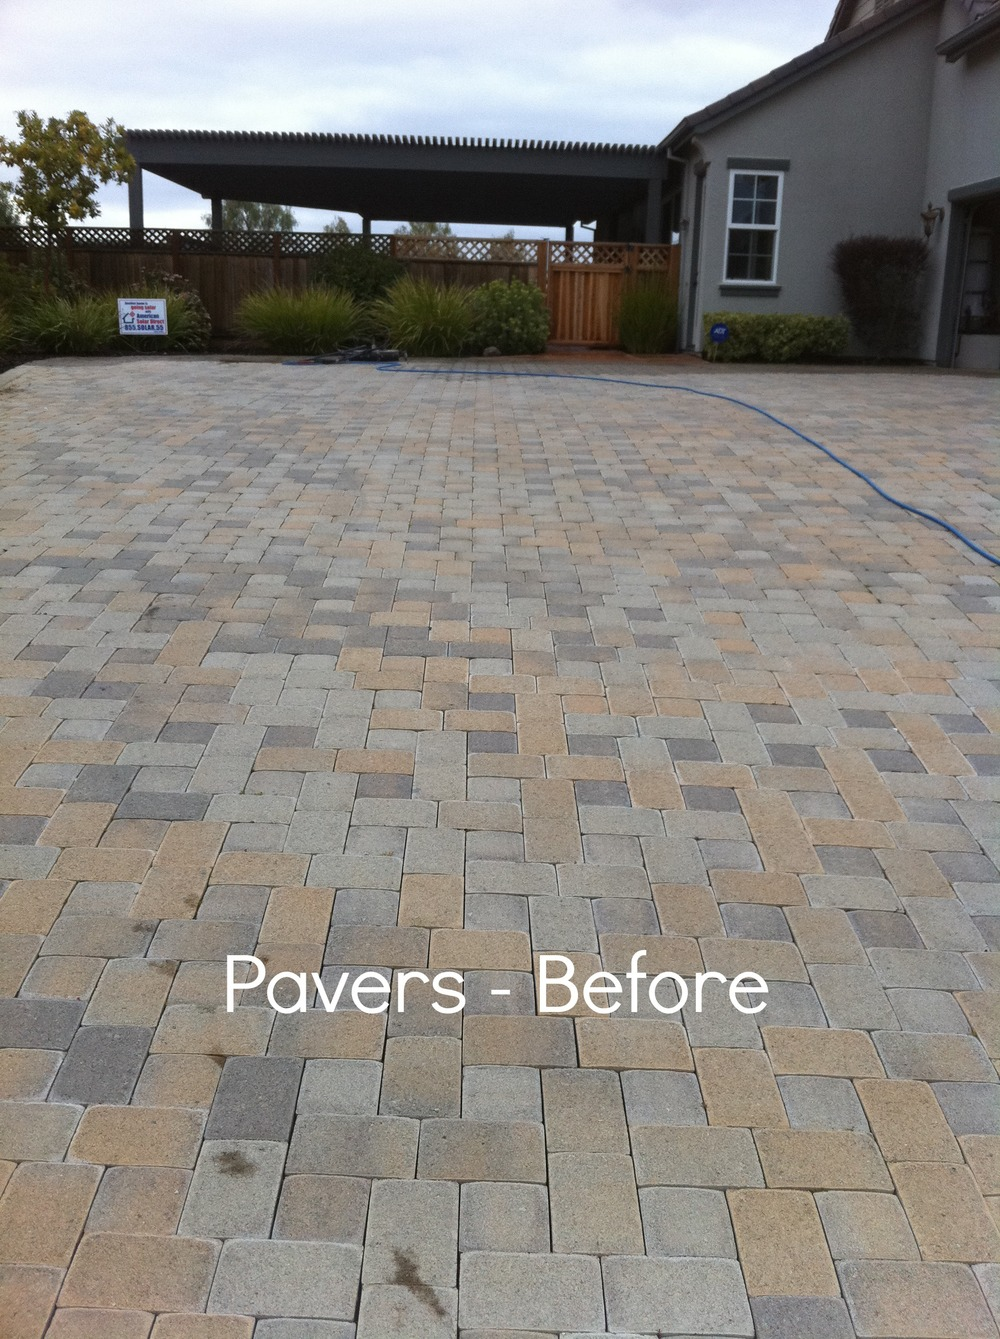 1 Paver before.jpg